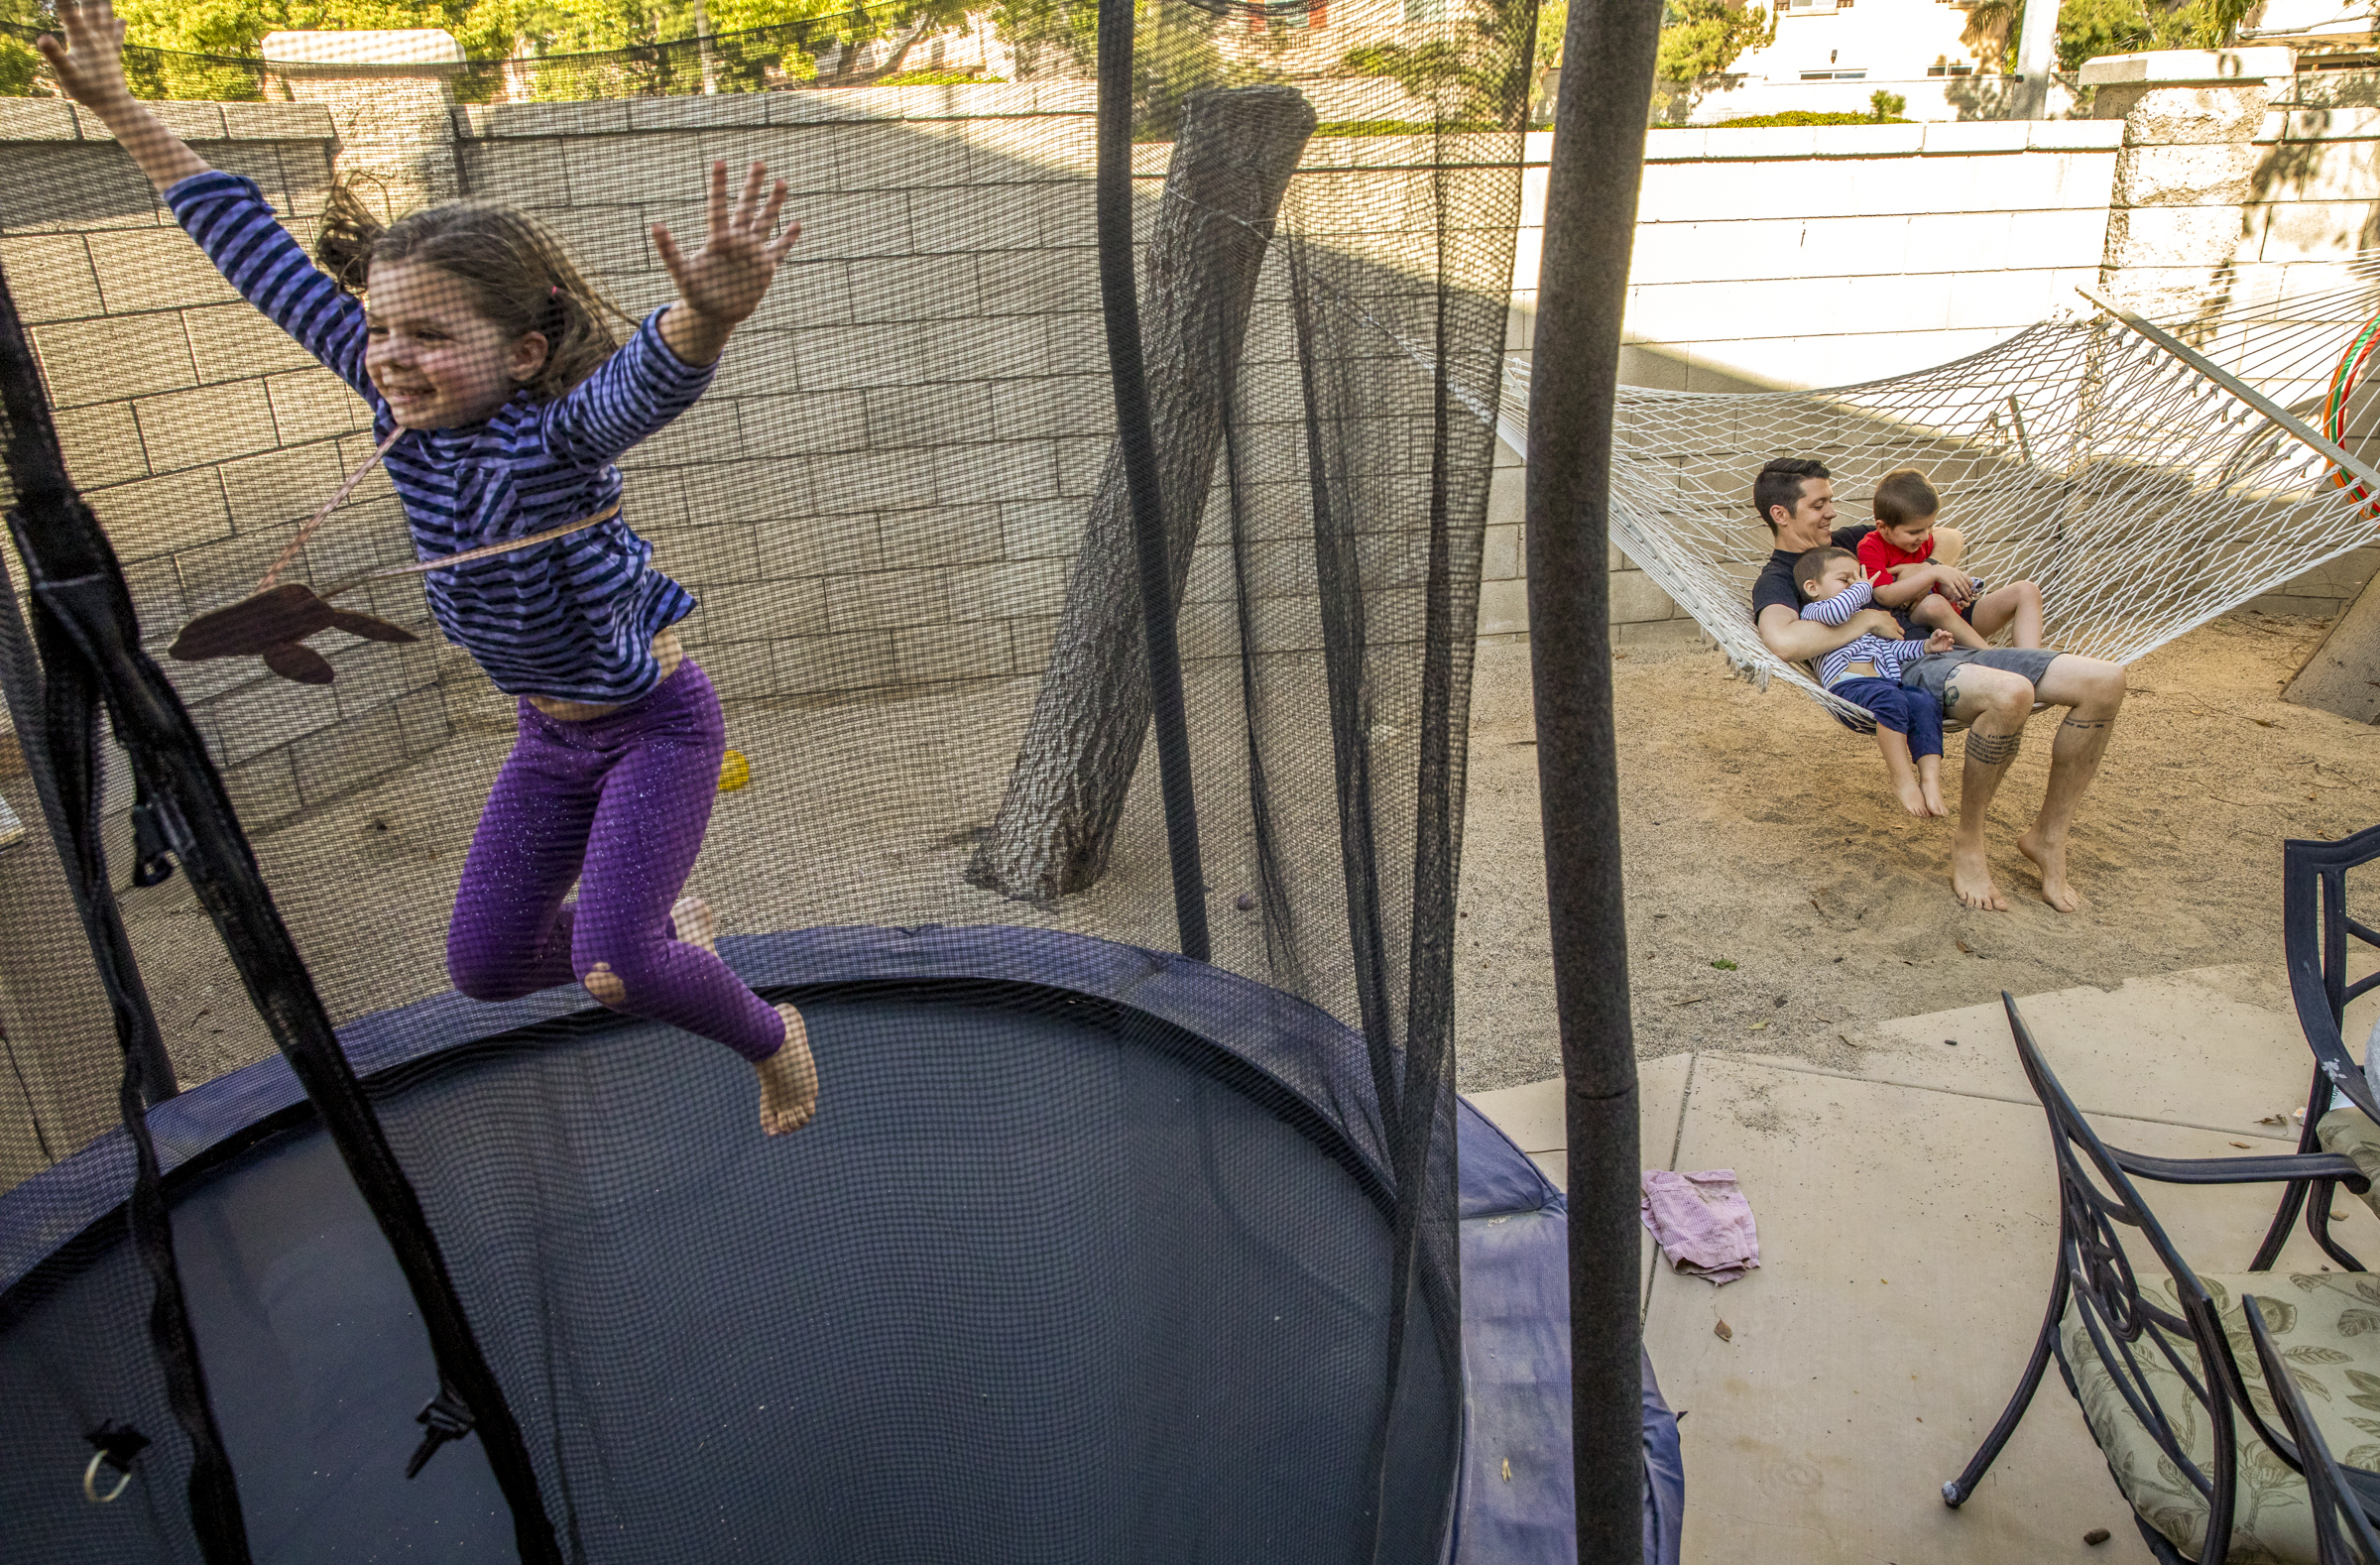 """Matt Vaudrey plays games in the backyard with his children, Cadence, 6, from left, Cameron, 2, and Clay, 4, at their home in Fontana, California, Monday, April 22, 2019. Vaudrey makes an effort to observe a """"digital Sabbath,"""" taking a break from technolog"""